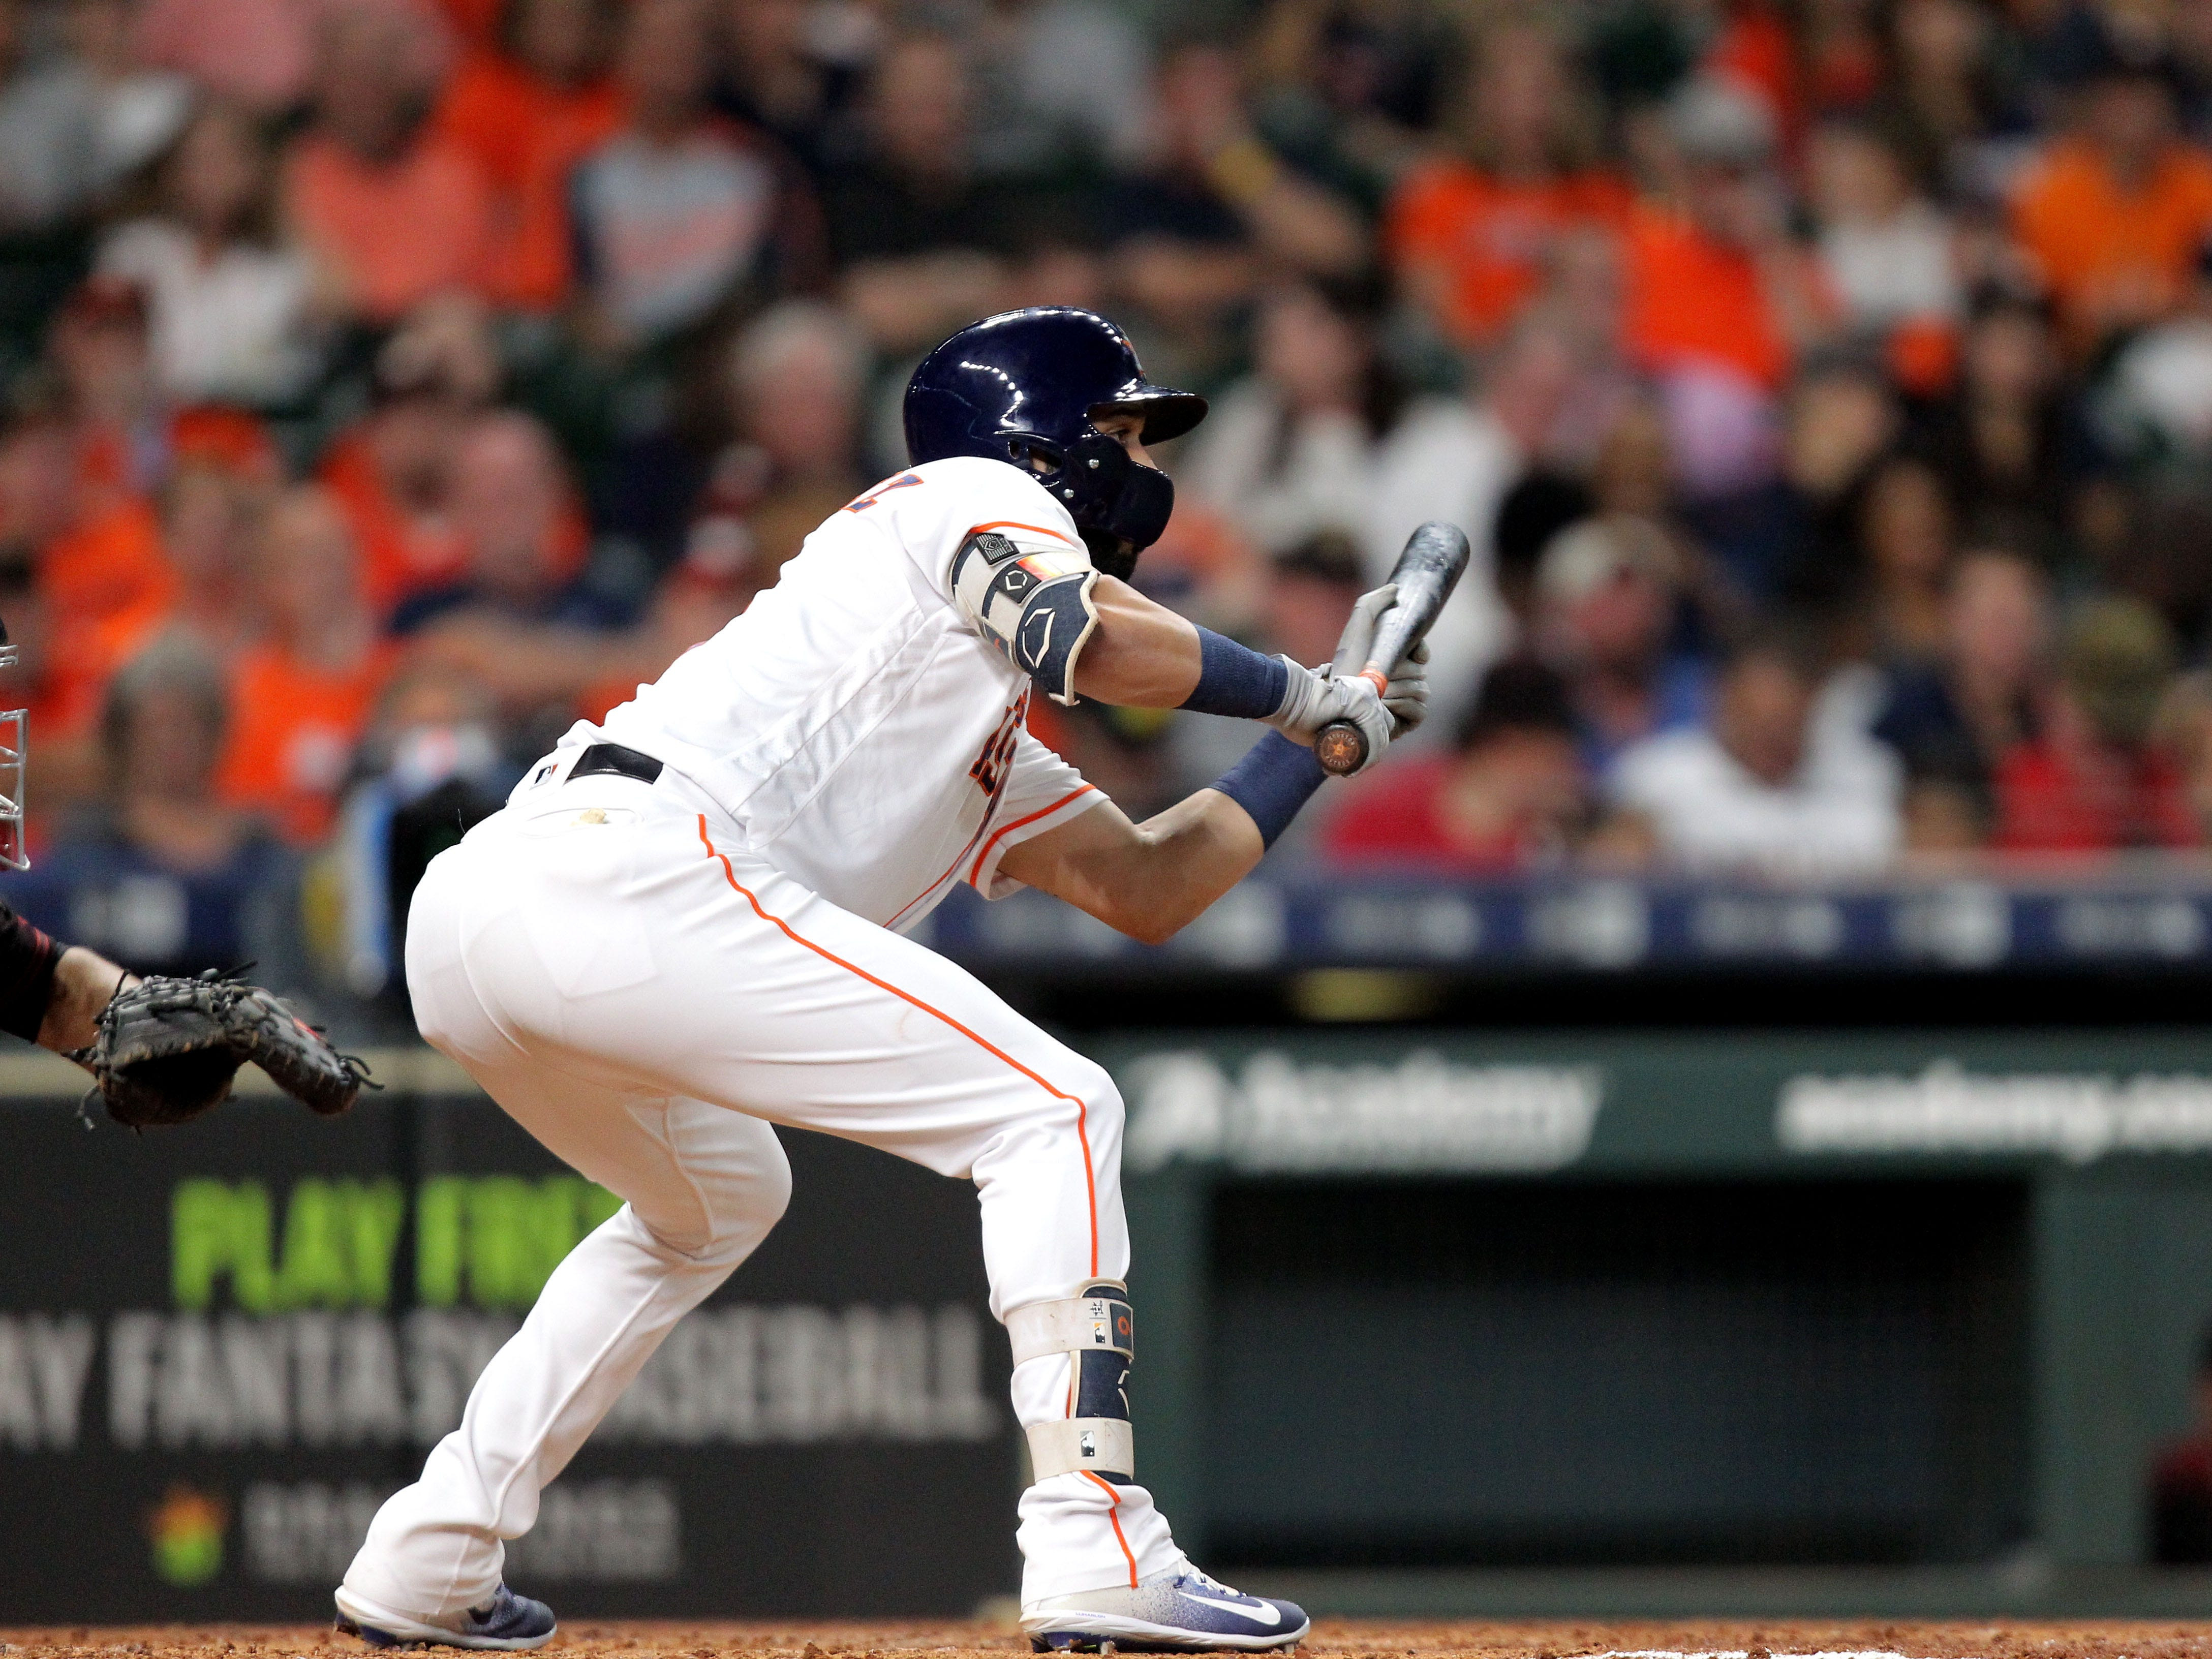 Sep 15, 2018; Houston, TX, USA; Houston Astros left fielder Marwin Gonzalez (9) looks to lay down a bunt against the Arizona Diamondbacks during the third inning at Minute Maid Park. Mandatory Credit: Erik Williams-USA TODAY Sports